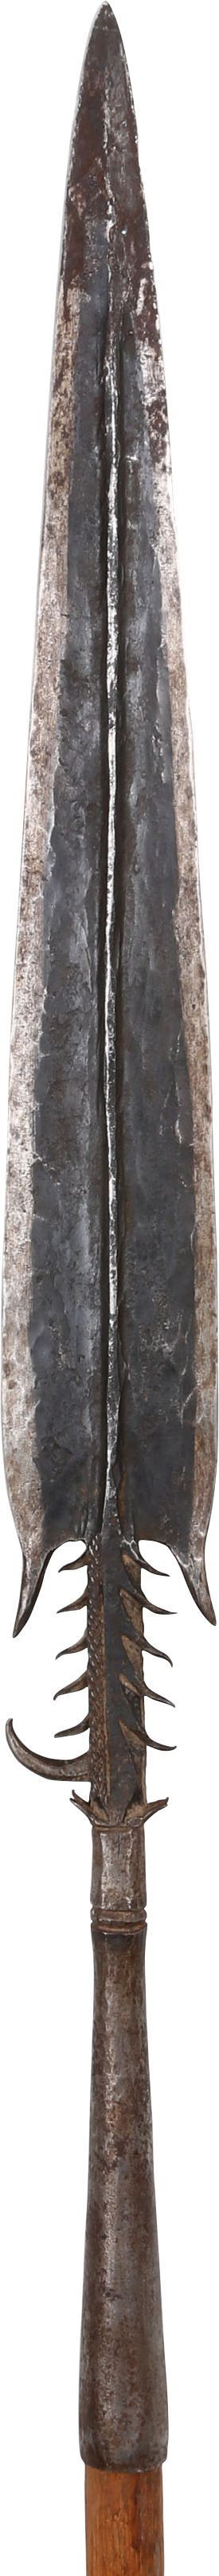 Sudanese Infantry Spear C.1880 - Product